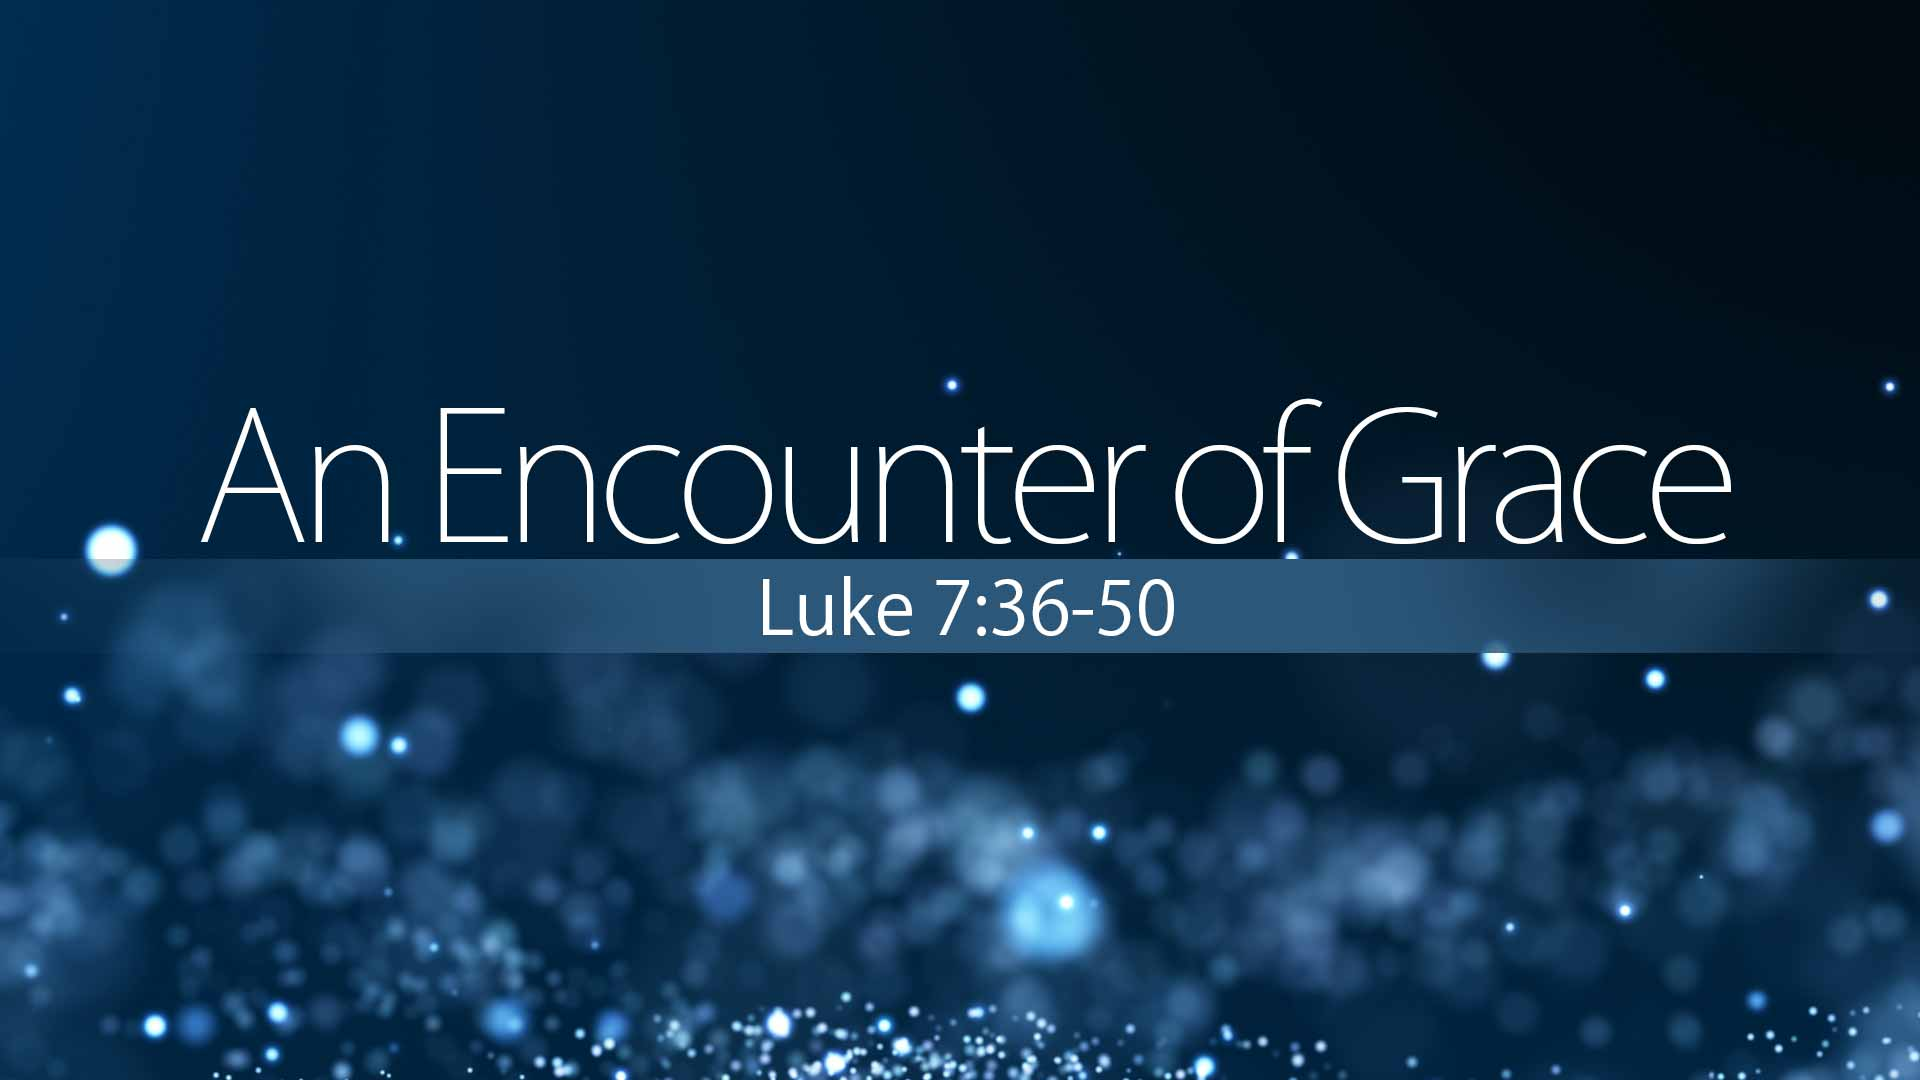 An Encounter of Grace